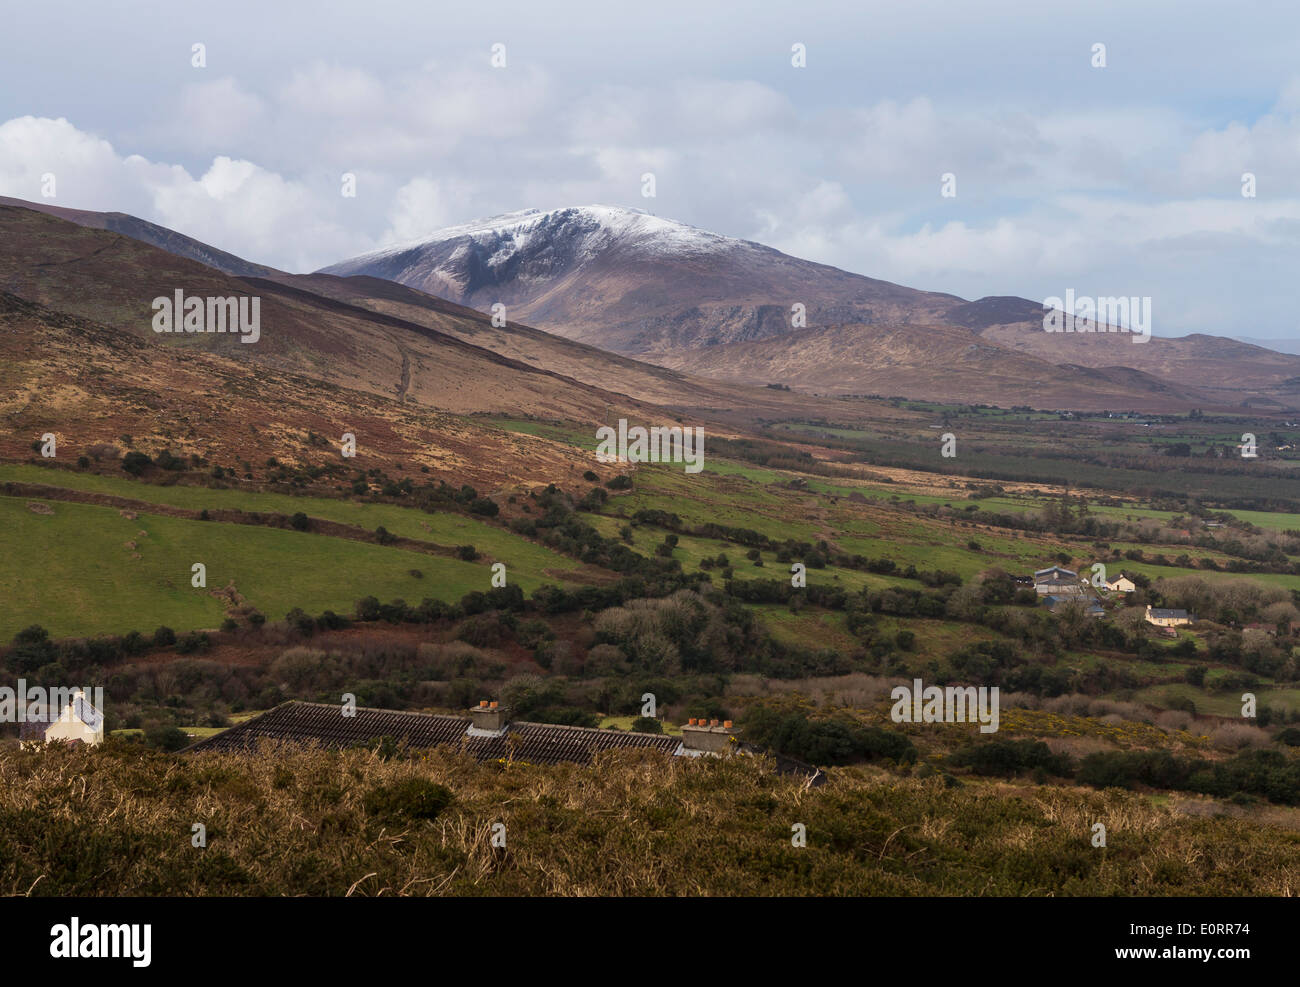 Ireland landscape in County Kerry near Dingle in the Republic of Ireland, with snow on the mountains in the distance Stock Photo